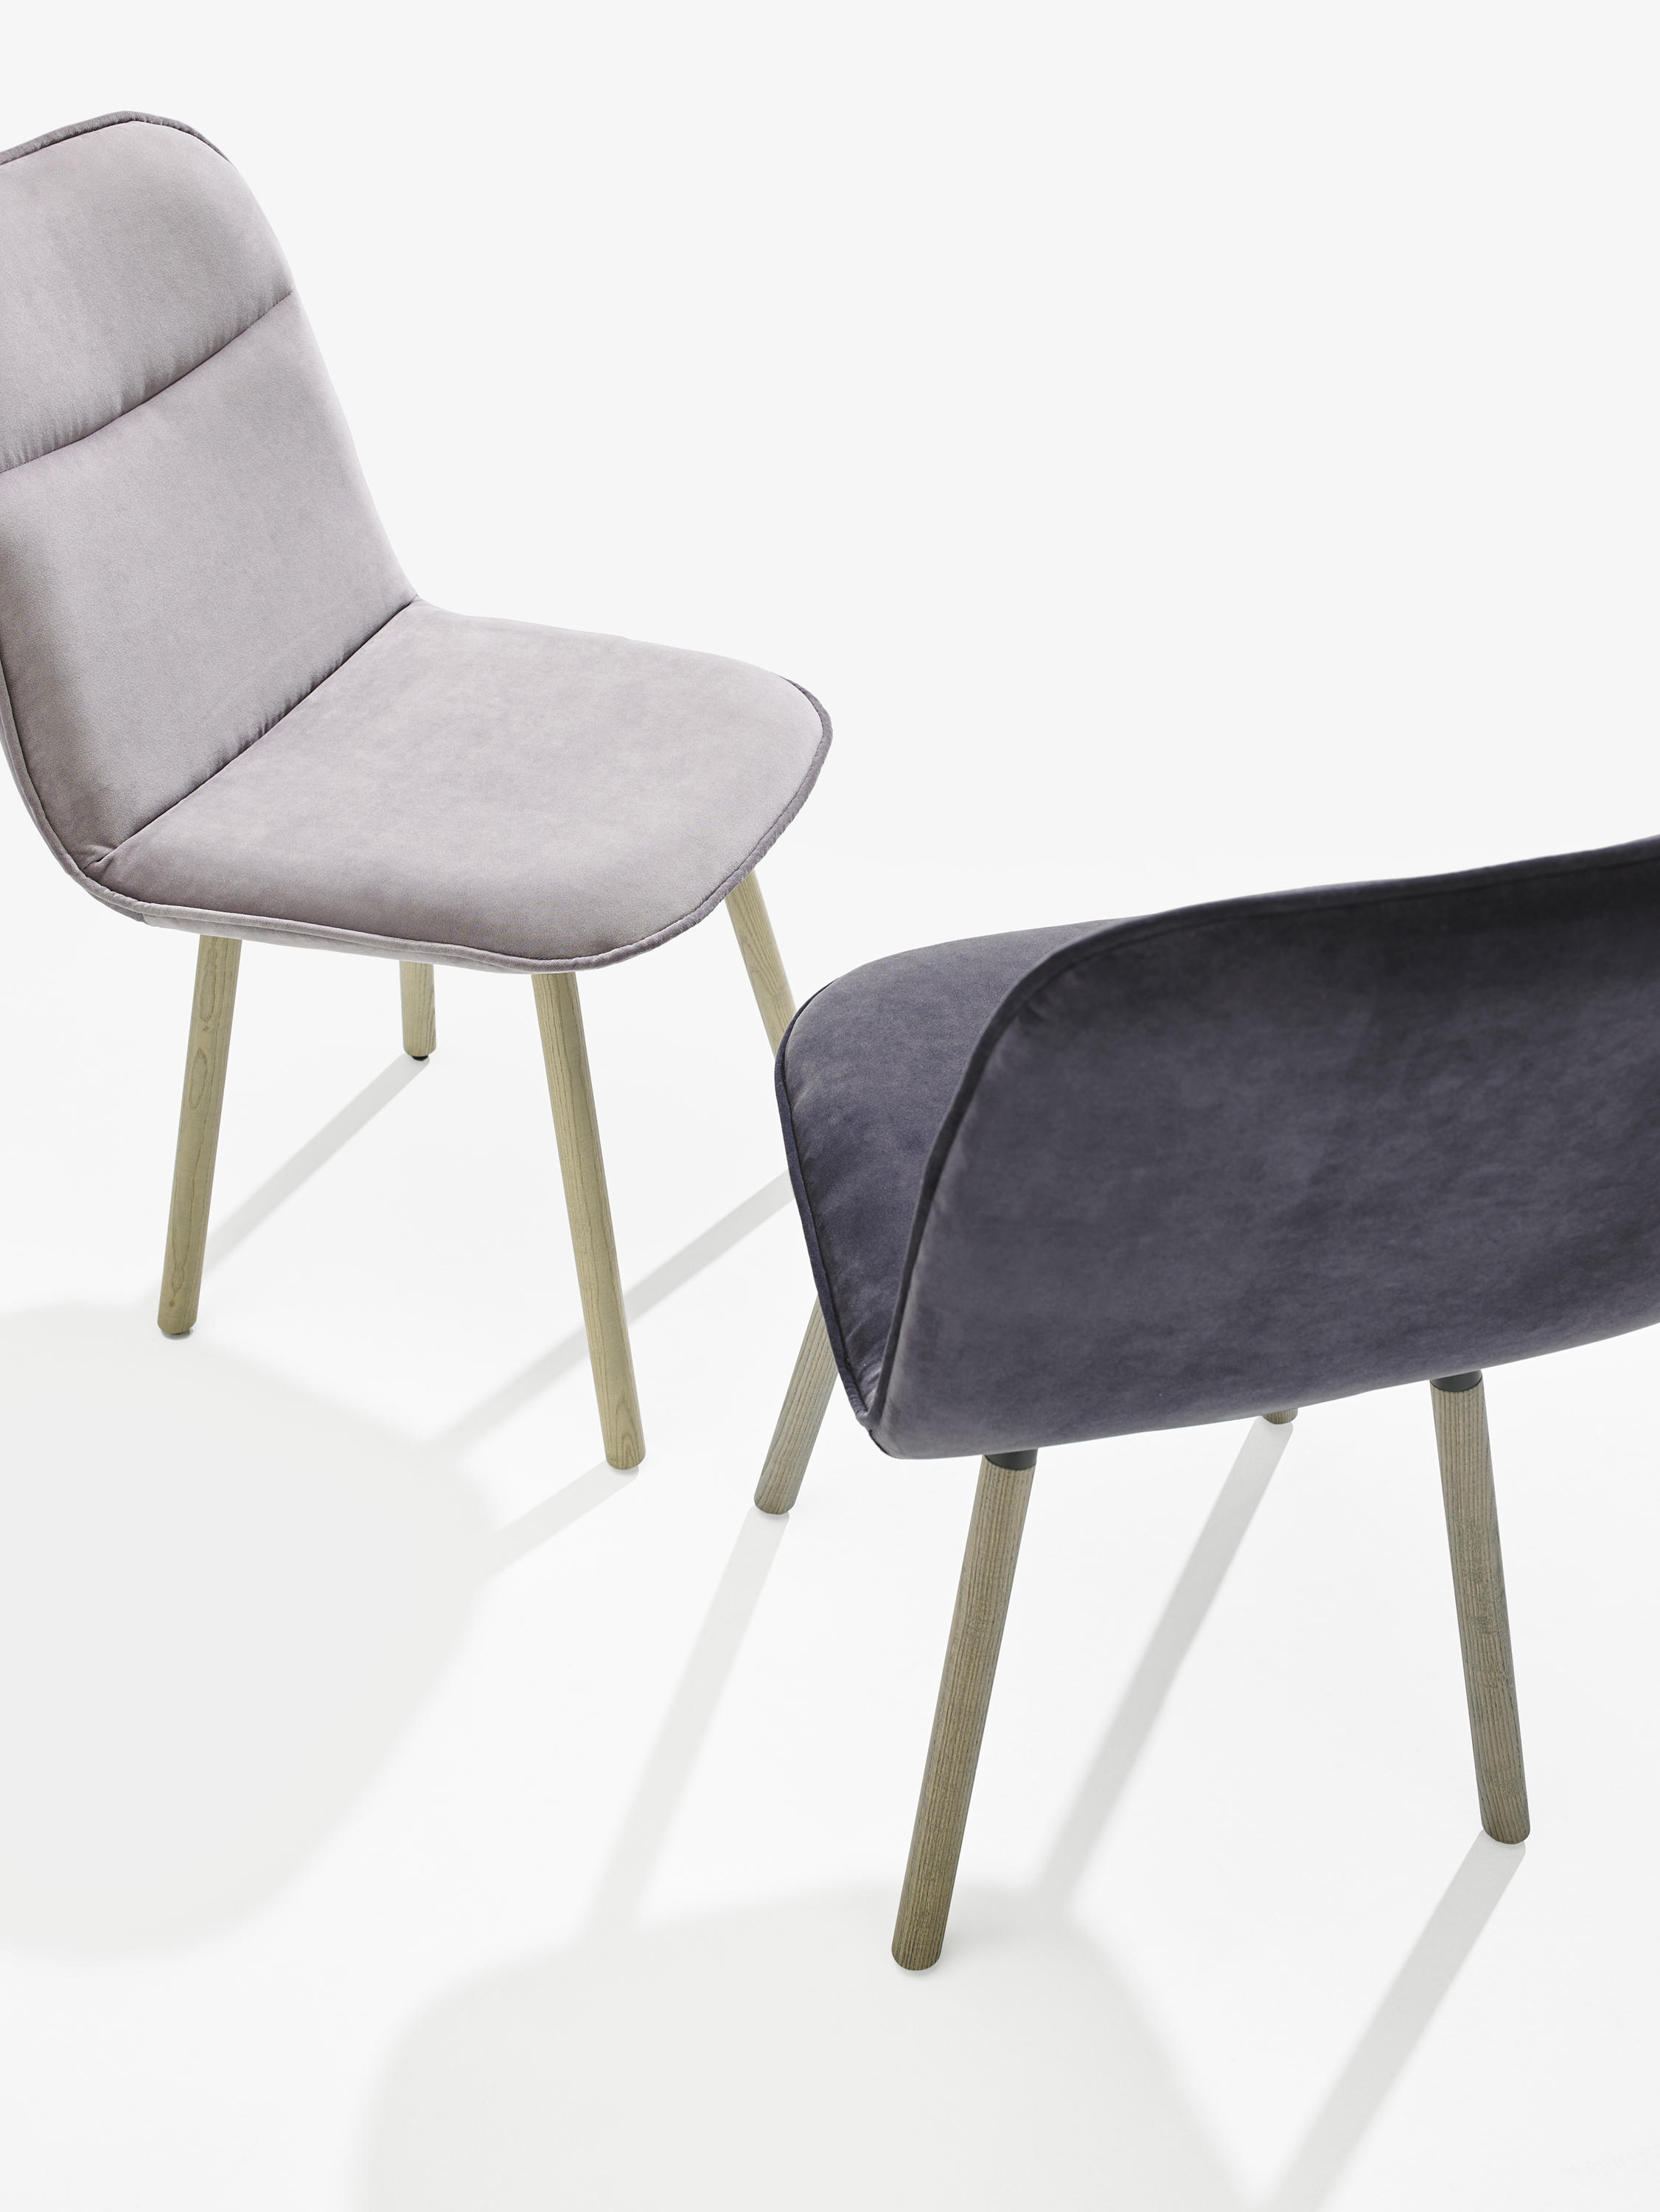 K 214 Ln Metal Legs Dining Tables From Mobliberica Architonic